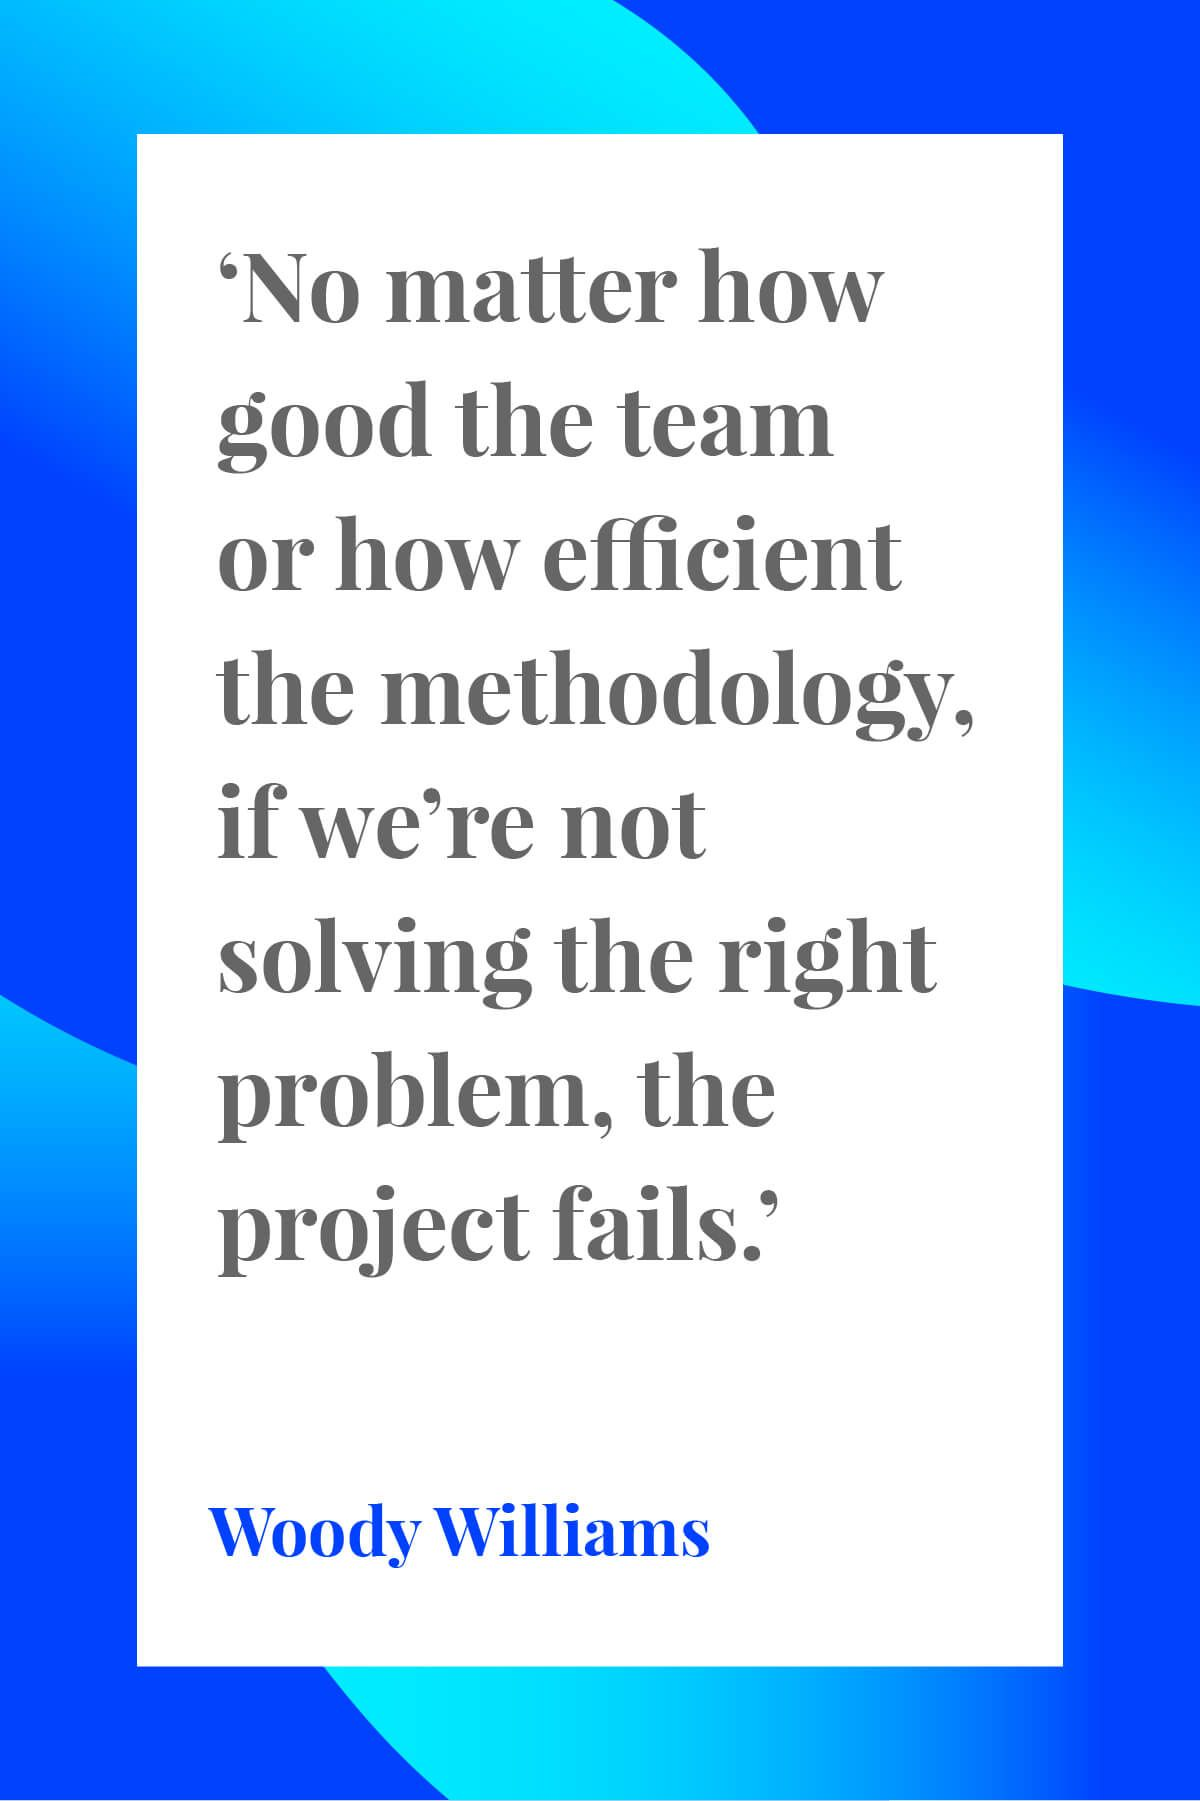 50 Project Management Quotes to Inspire You Before Your